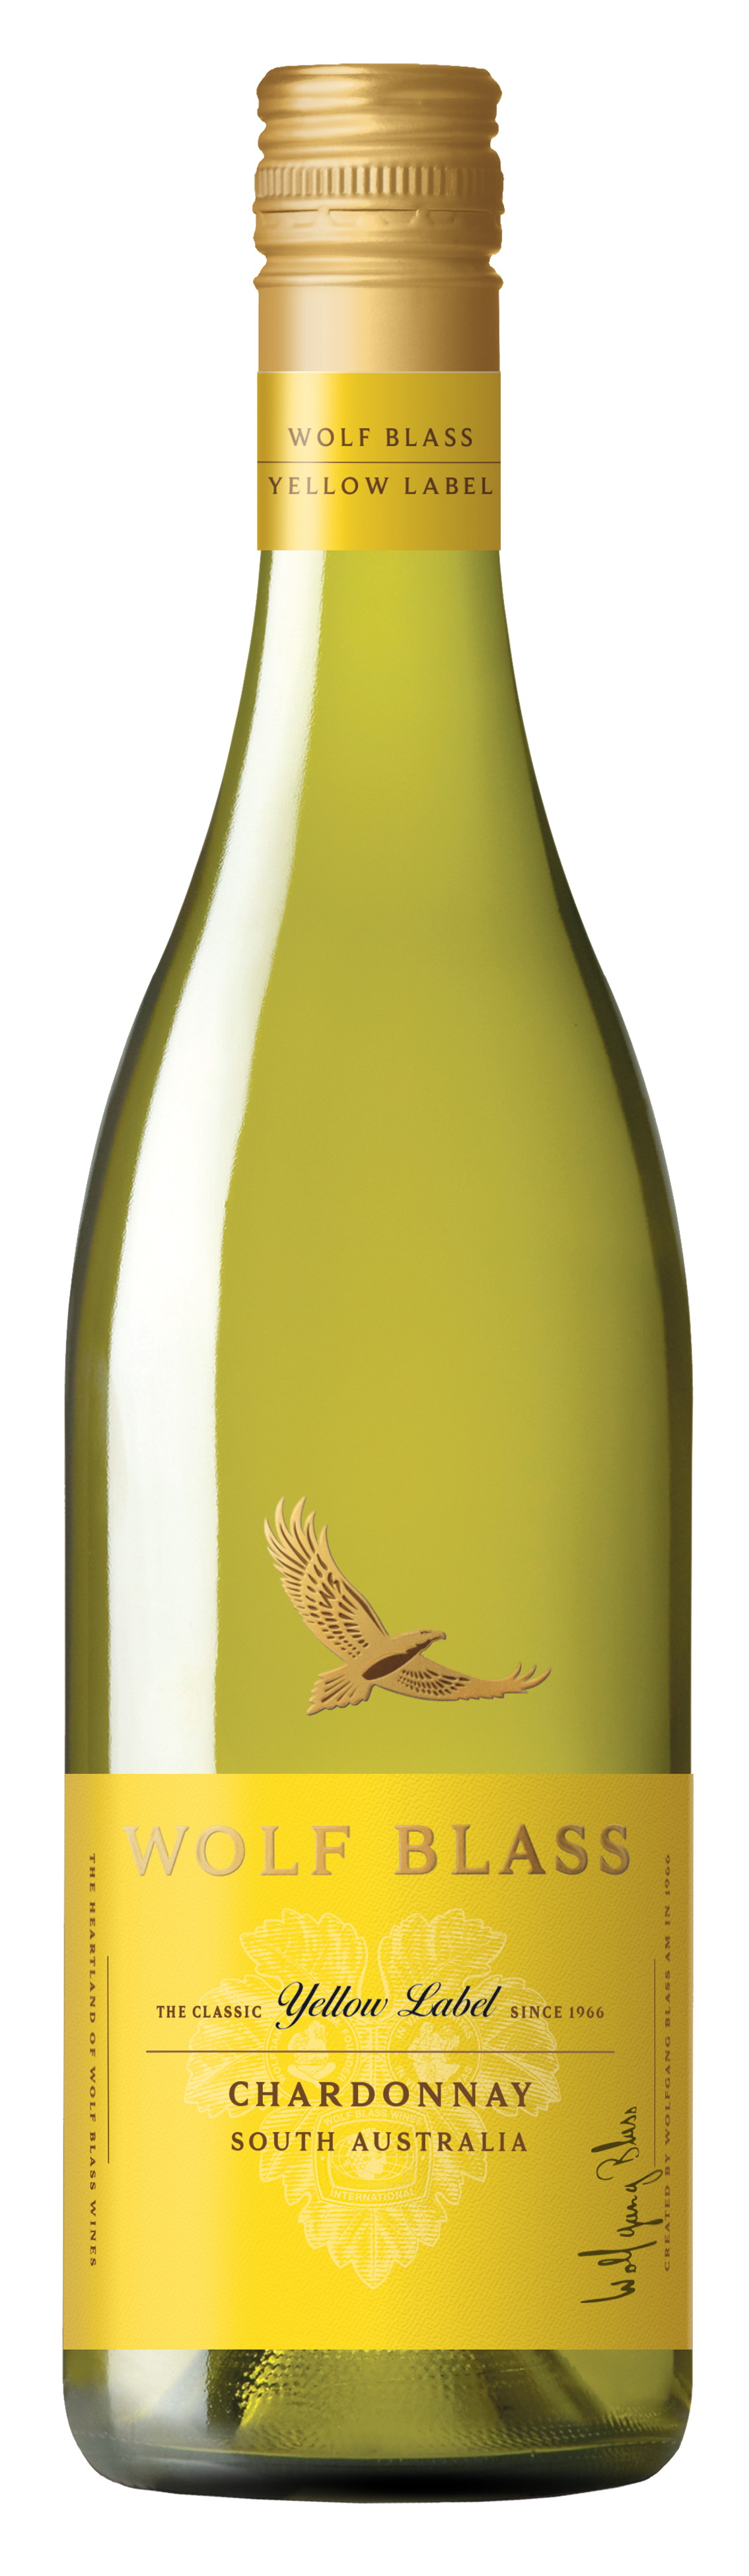 A Chardonnay Made with Food in Mind